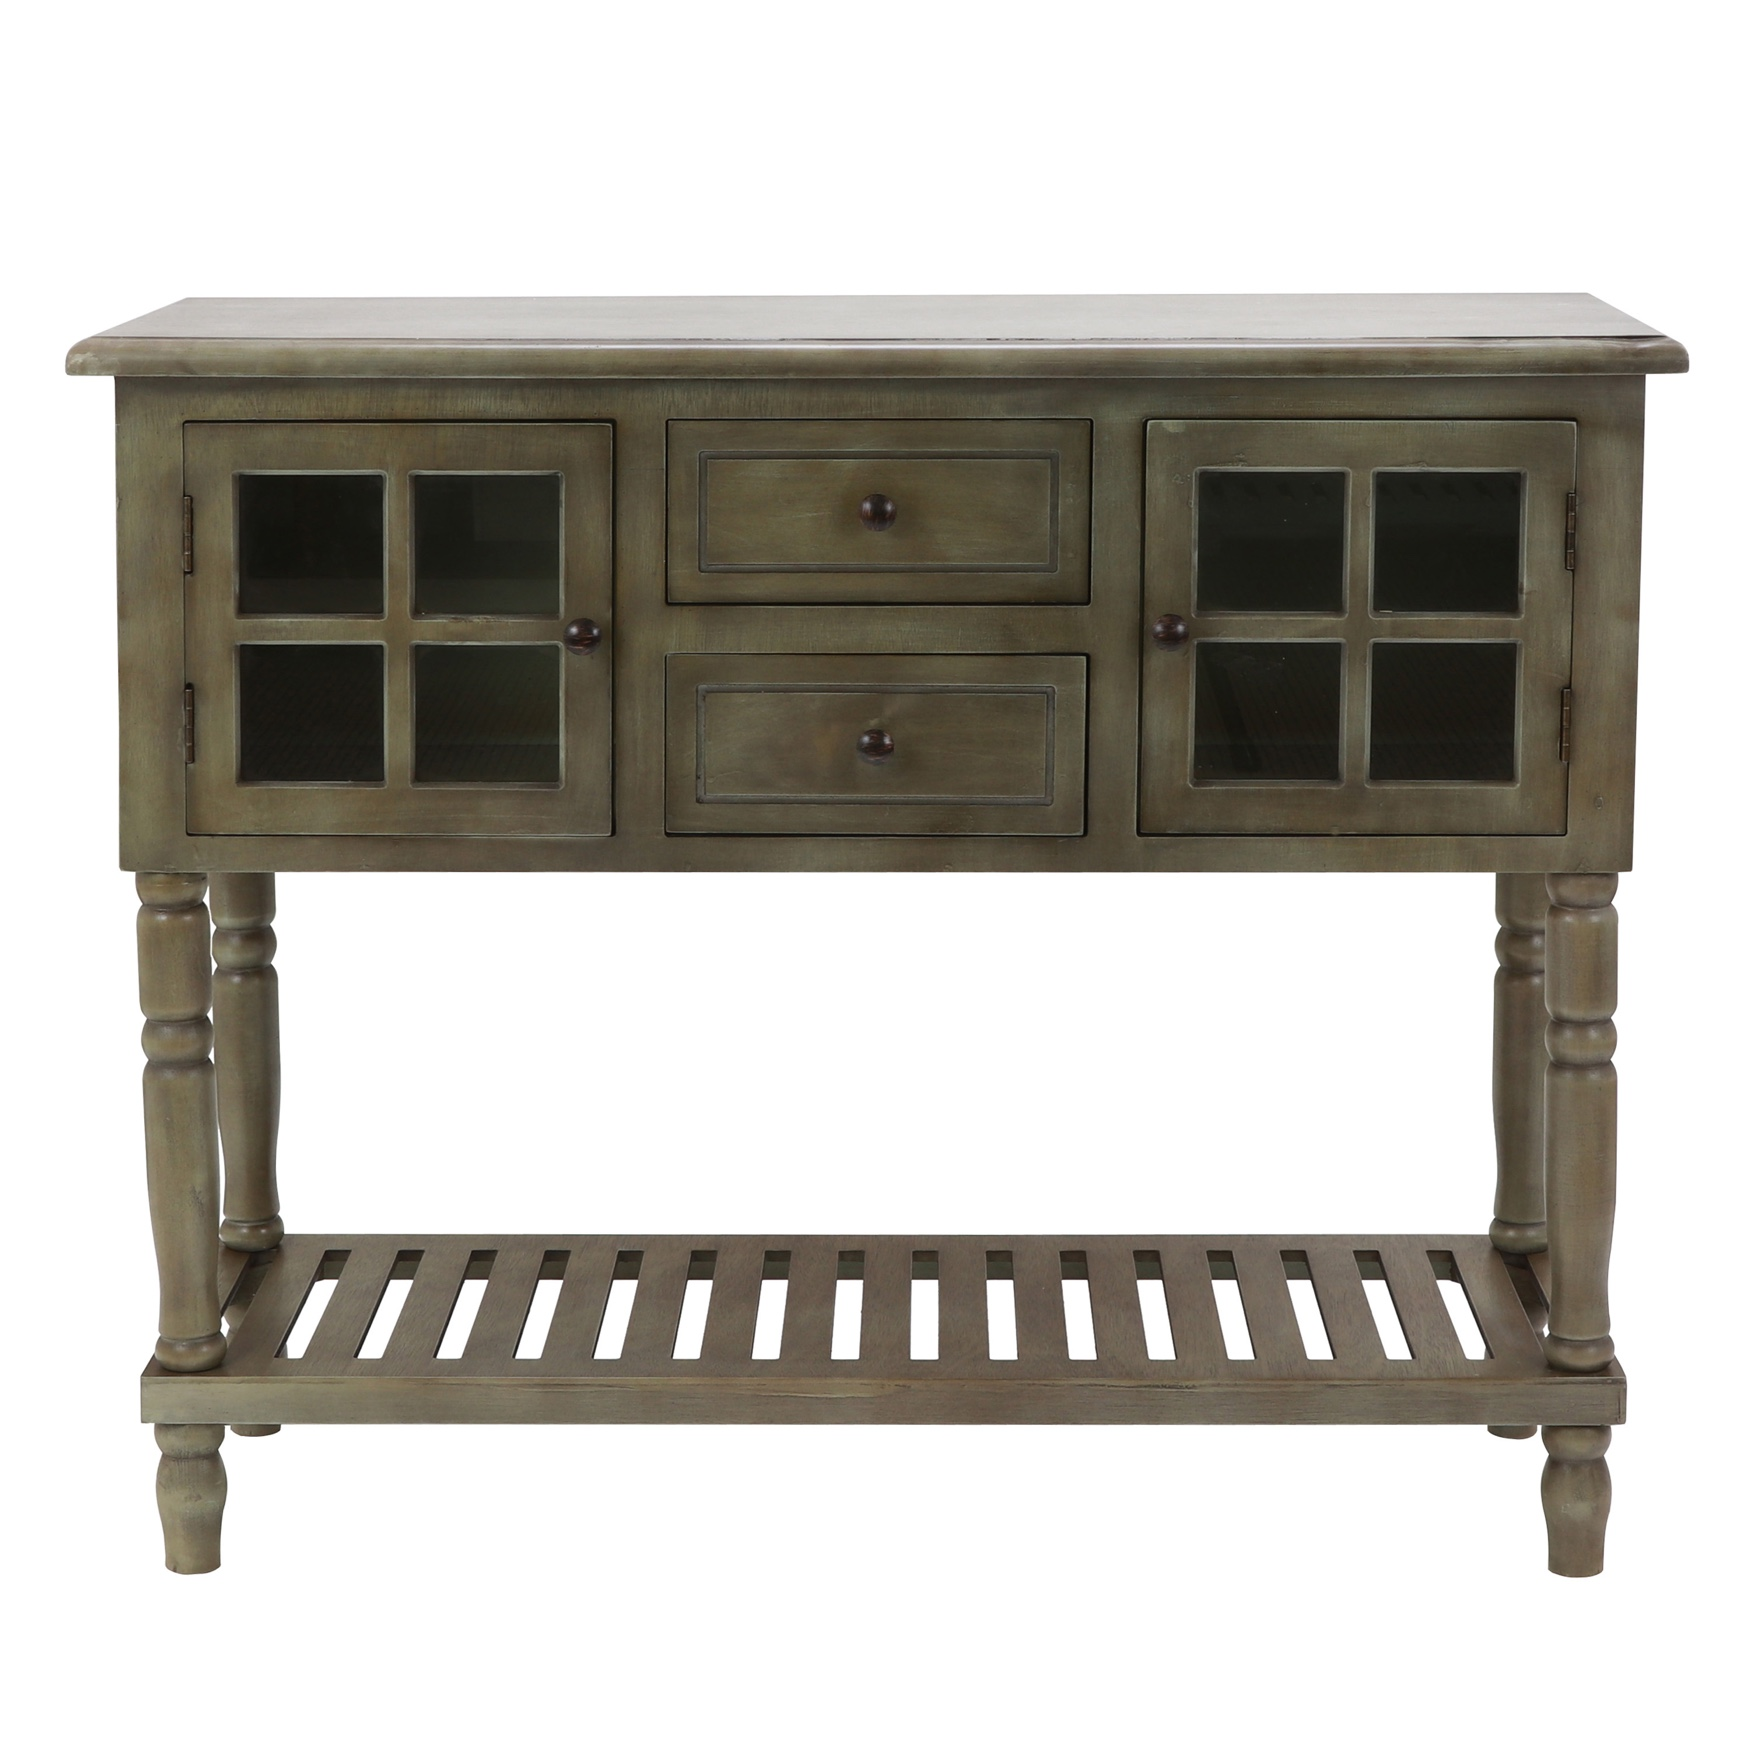 Antique Grey Buffet Console by J. Hunt, GRAY